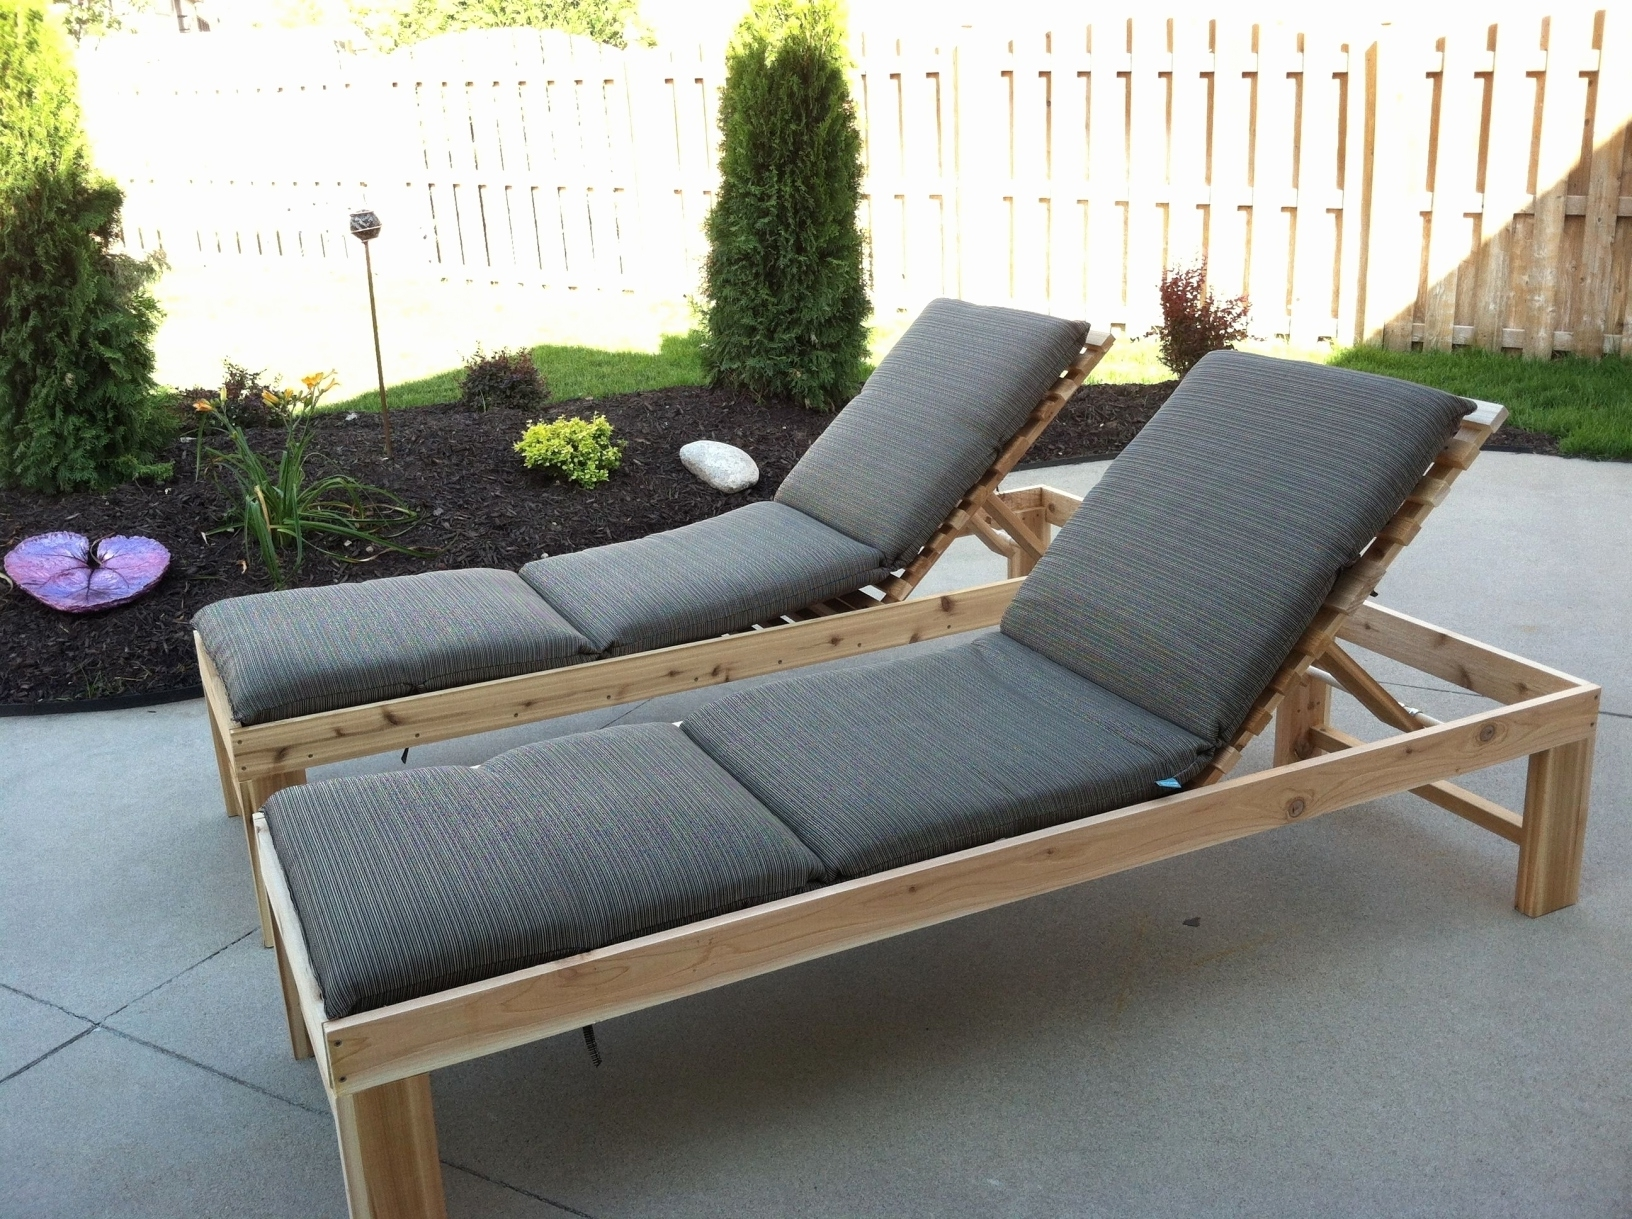 Beach Chaise Lounge Chairs Amazing Diy Chaise Lounge Diy Outdoor In Well Known Diy Chaise Lounge Chairs (View 6 of 15)